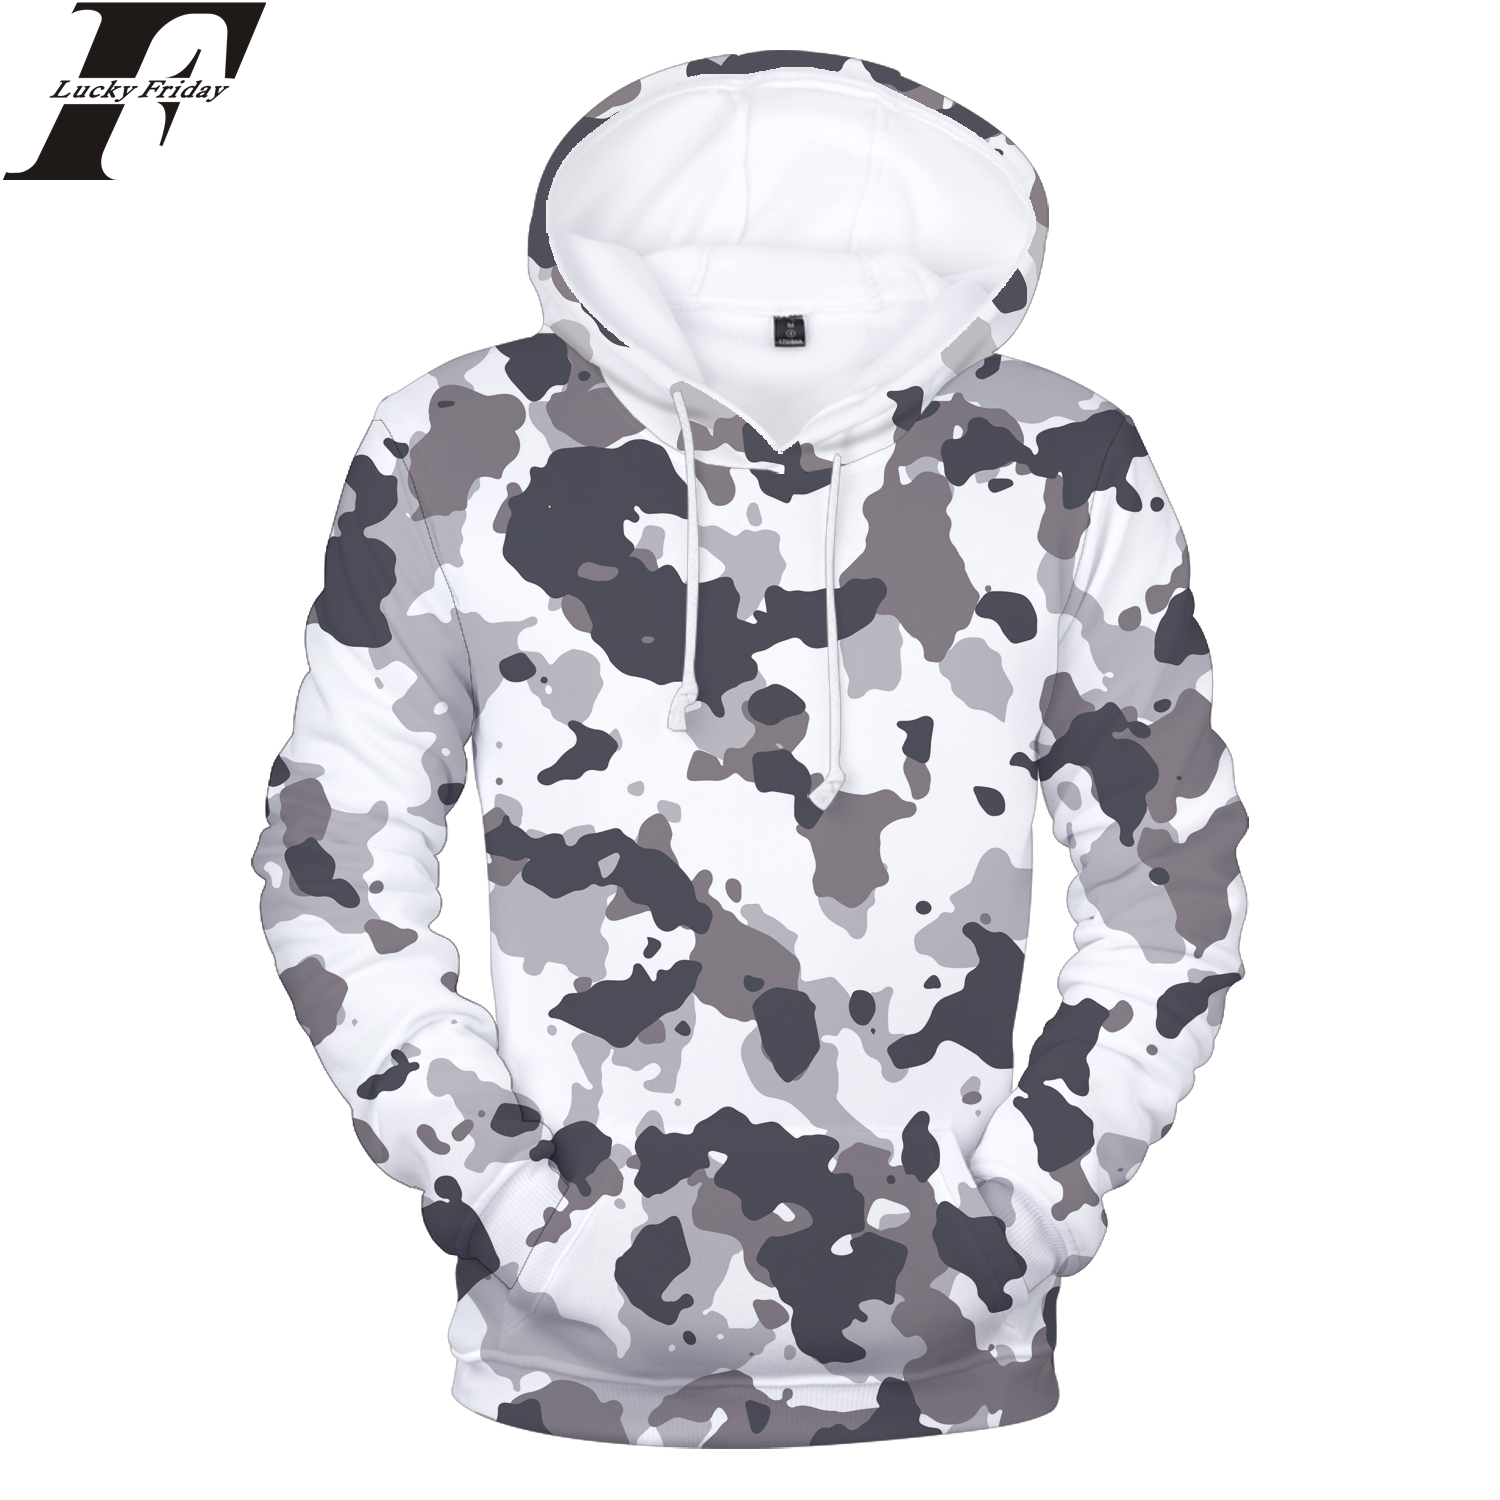 LUCKYFRIDAYF Camouflage Style 3D Hoodies Sweatshirts Women/Men Hoodies hit hop Hoodies Patchwork Style Casual Clothes Plus Size